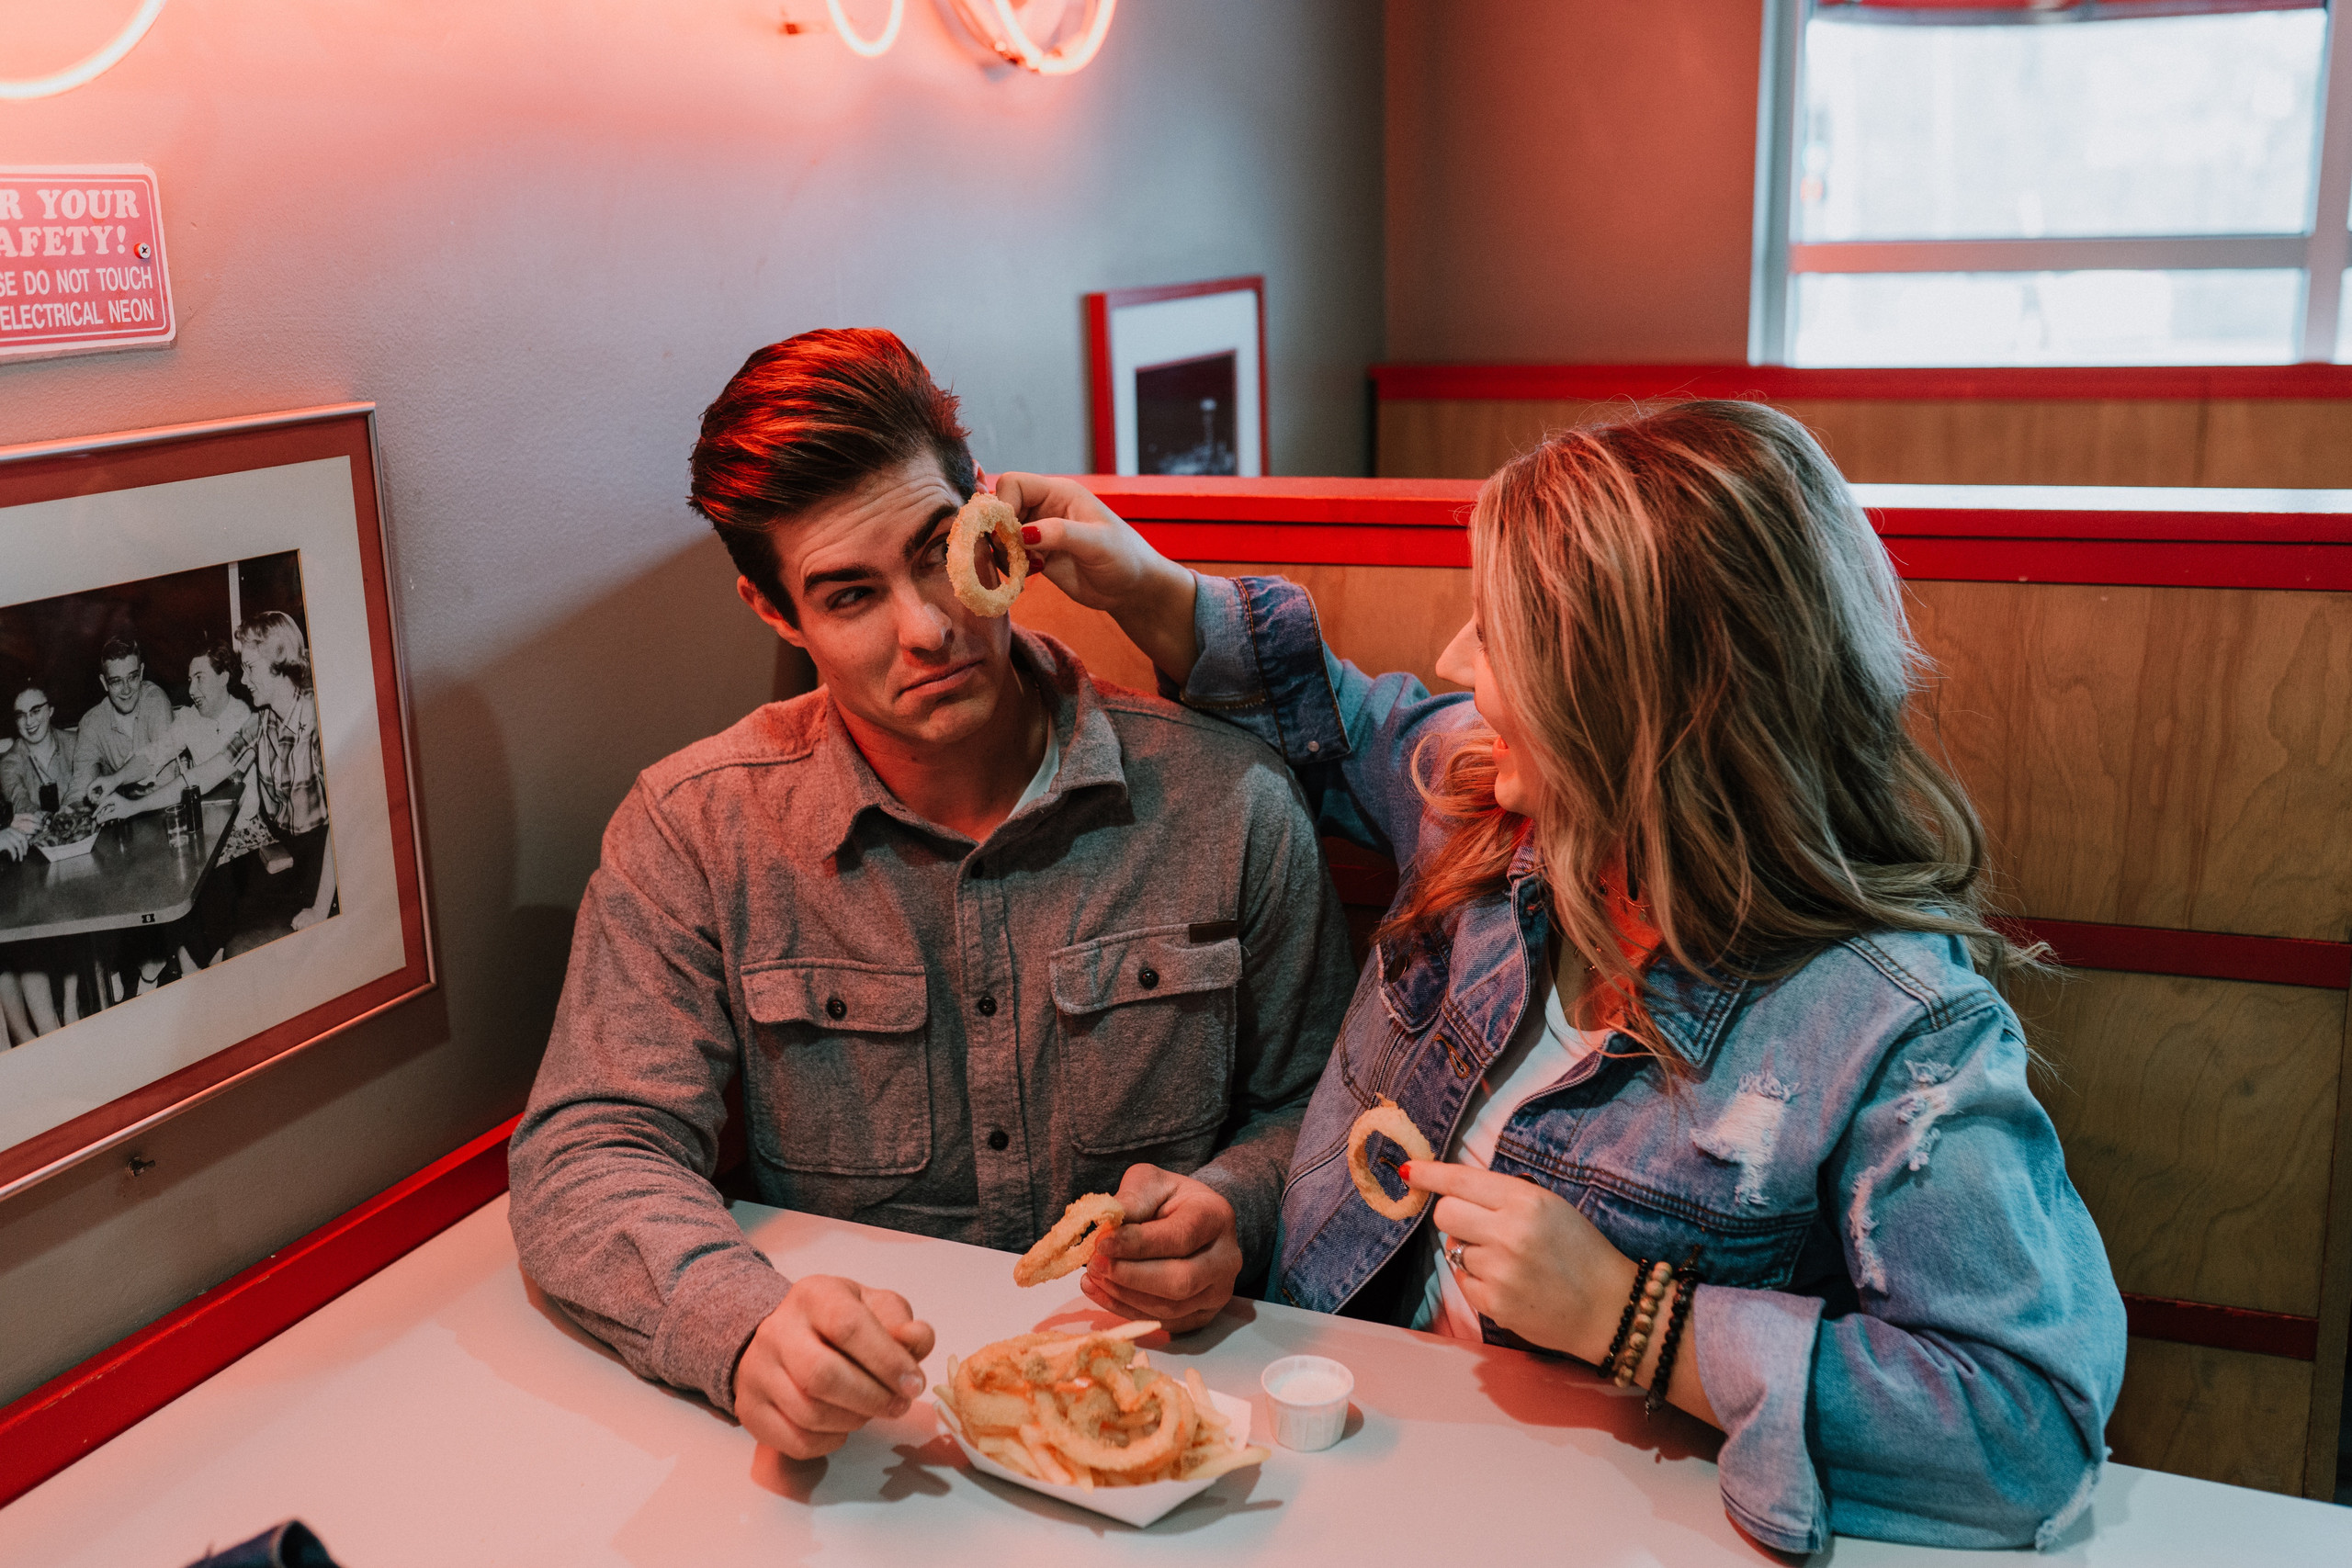 playful edgy diner engagement session with fries and onion rings omaha wedding photographer